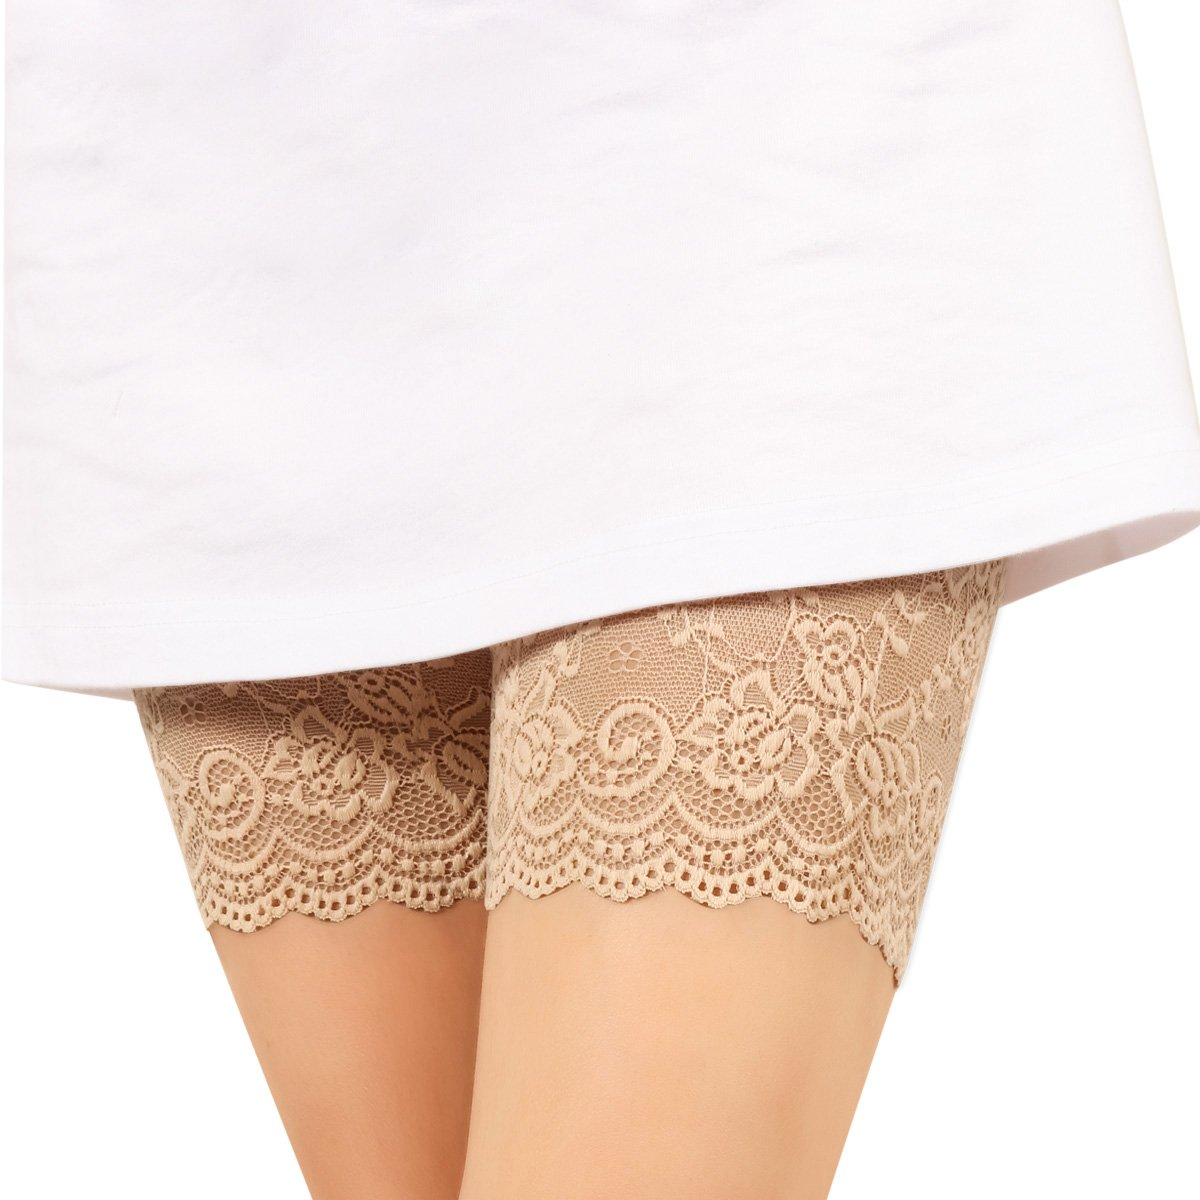 xhorizon TM FL1 Fashion Elastic Lace Thigh Bands with Silicone Prevent Sliding